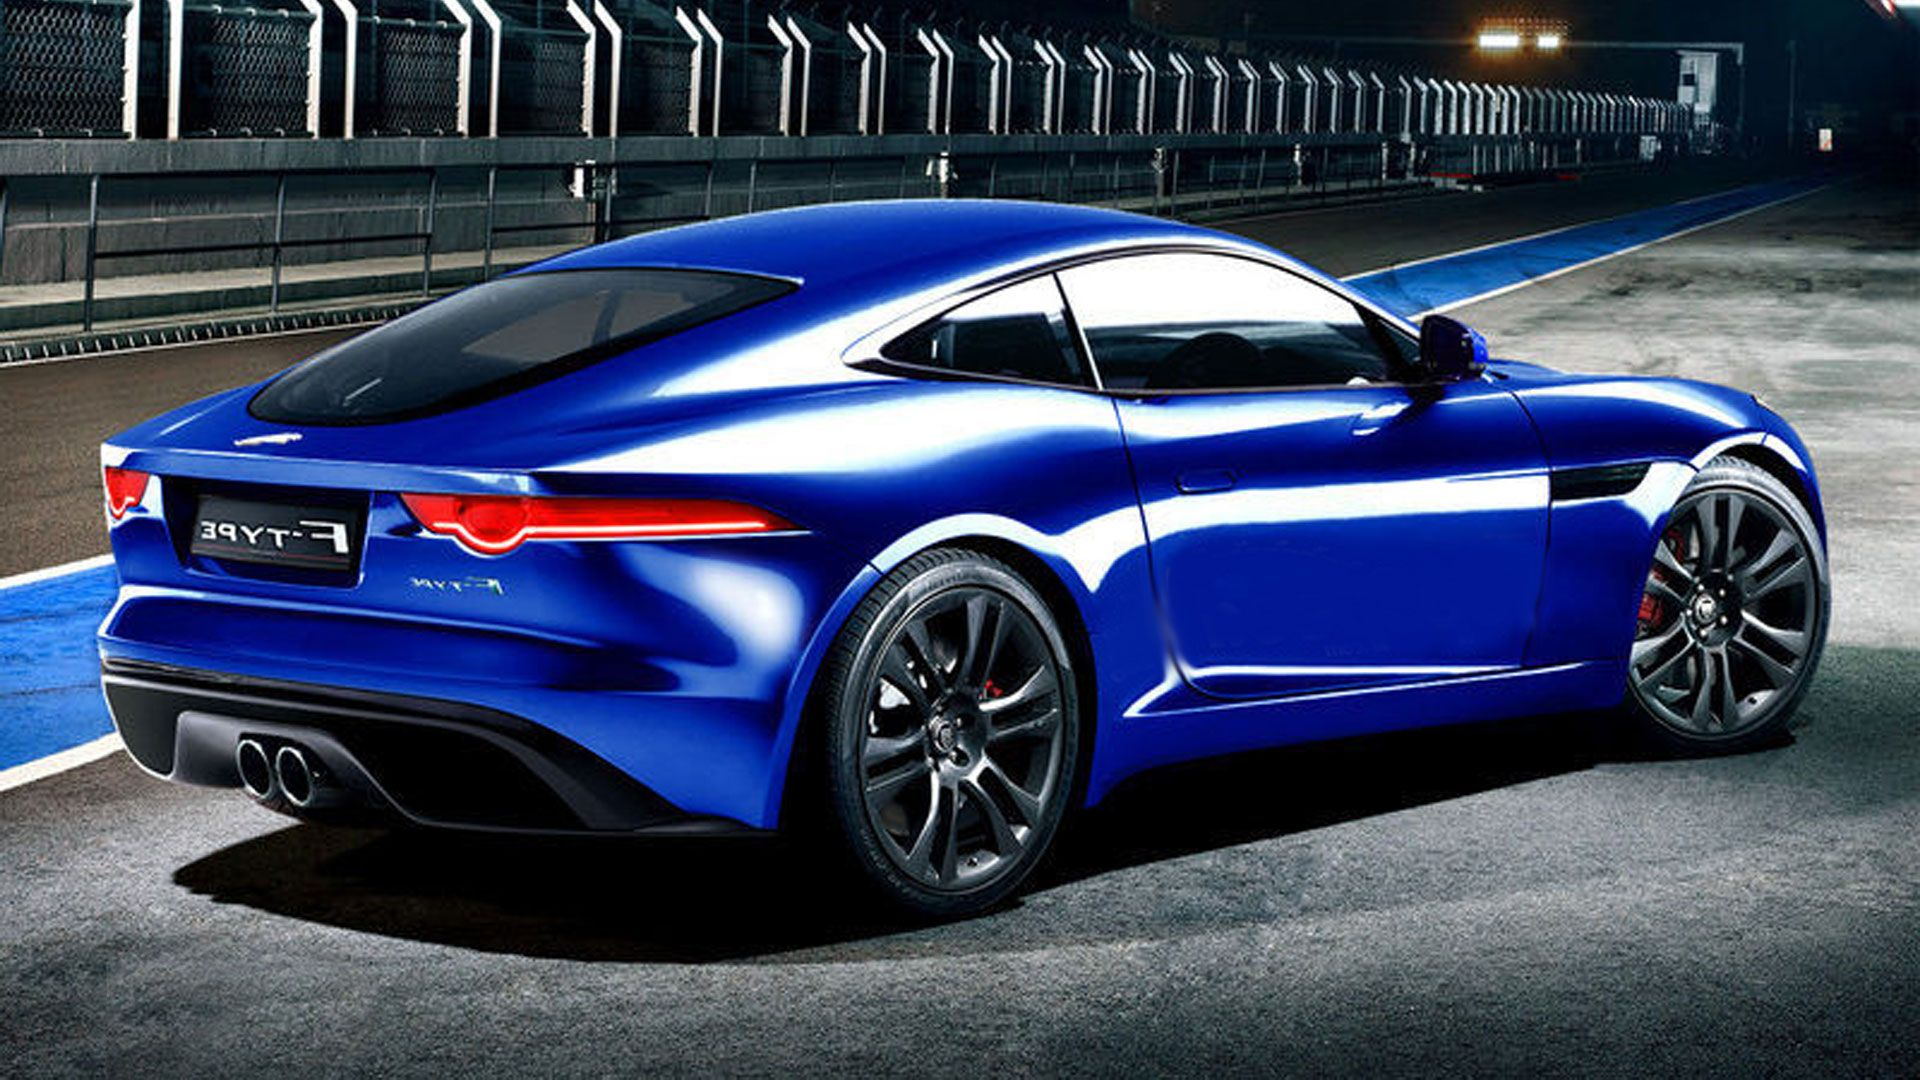 Concept car magazine cool car wallpapers - 2014 Jaguar F Type Redesign 2014 Jaguar F Type Coupe Top Car Magazine